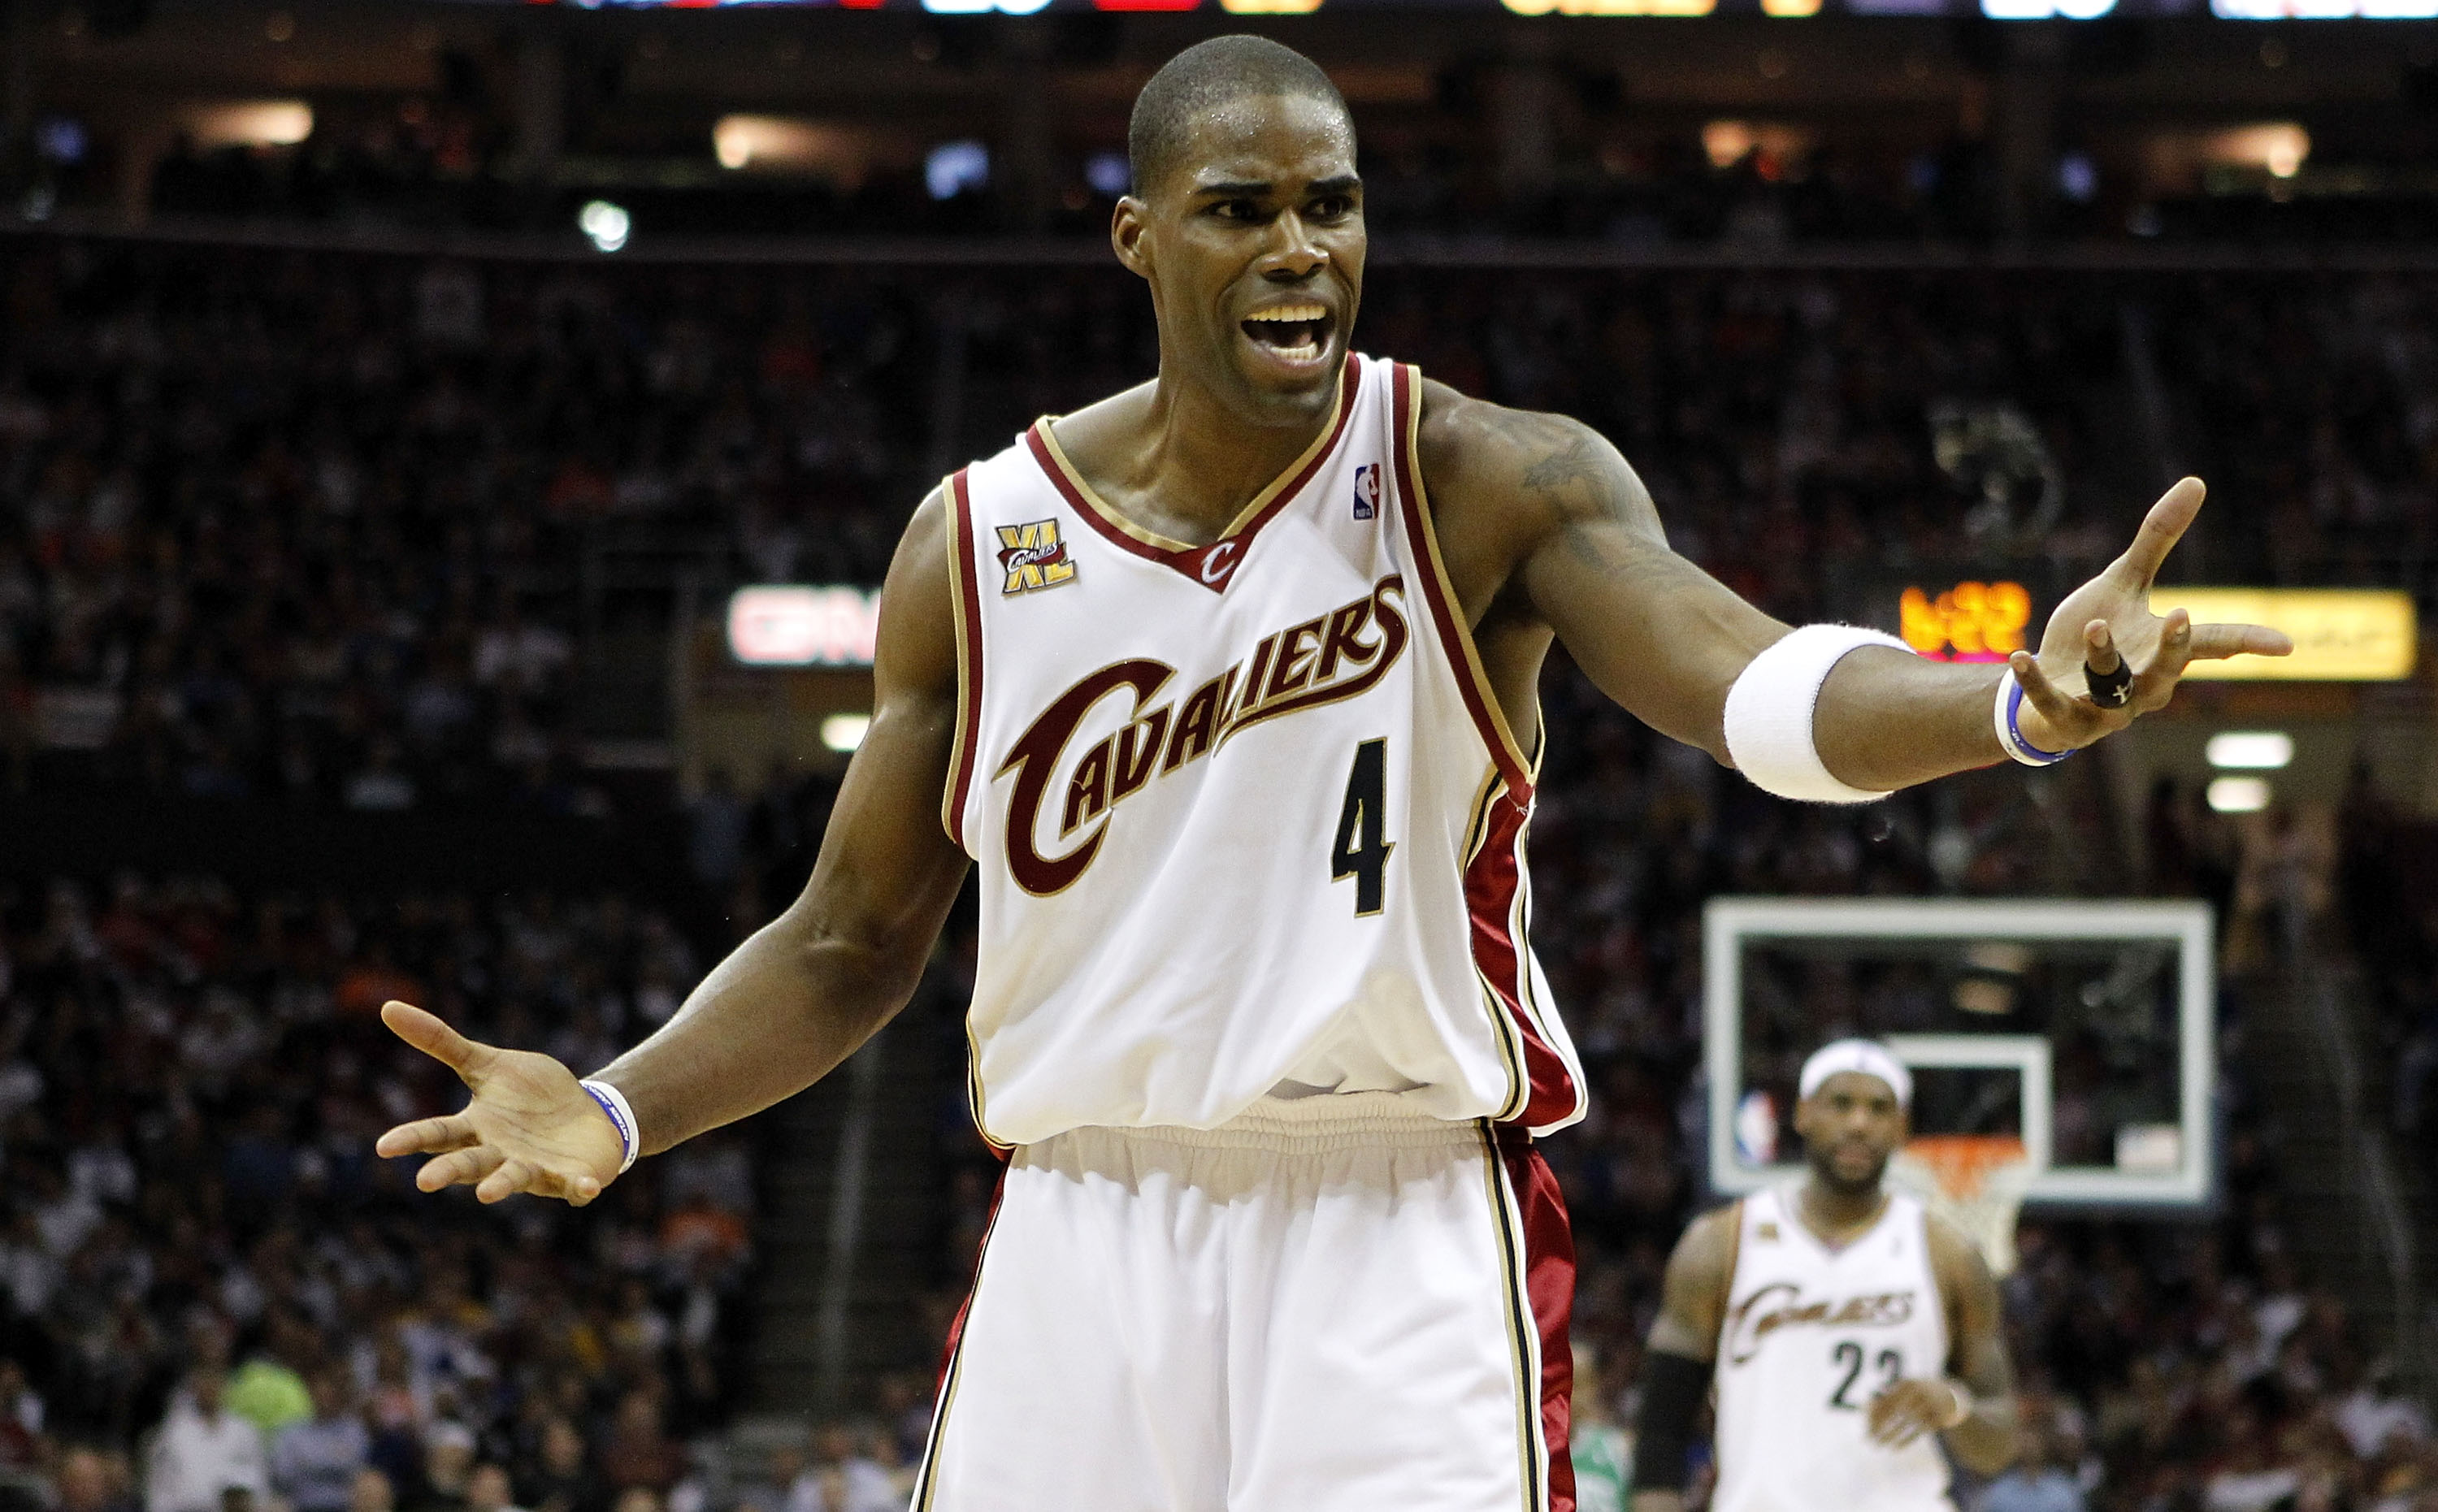 Antawn Jamison's time in Cleveland has been frustrating to say the least